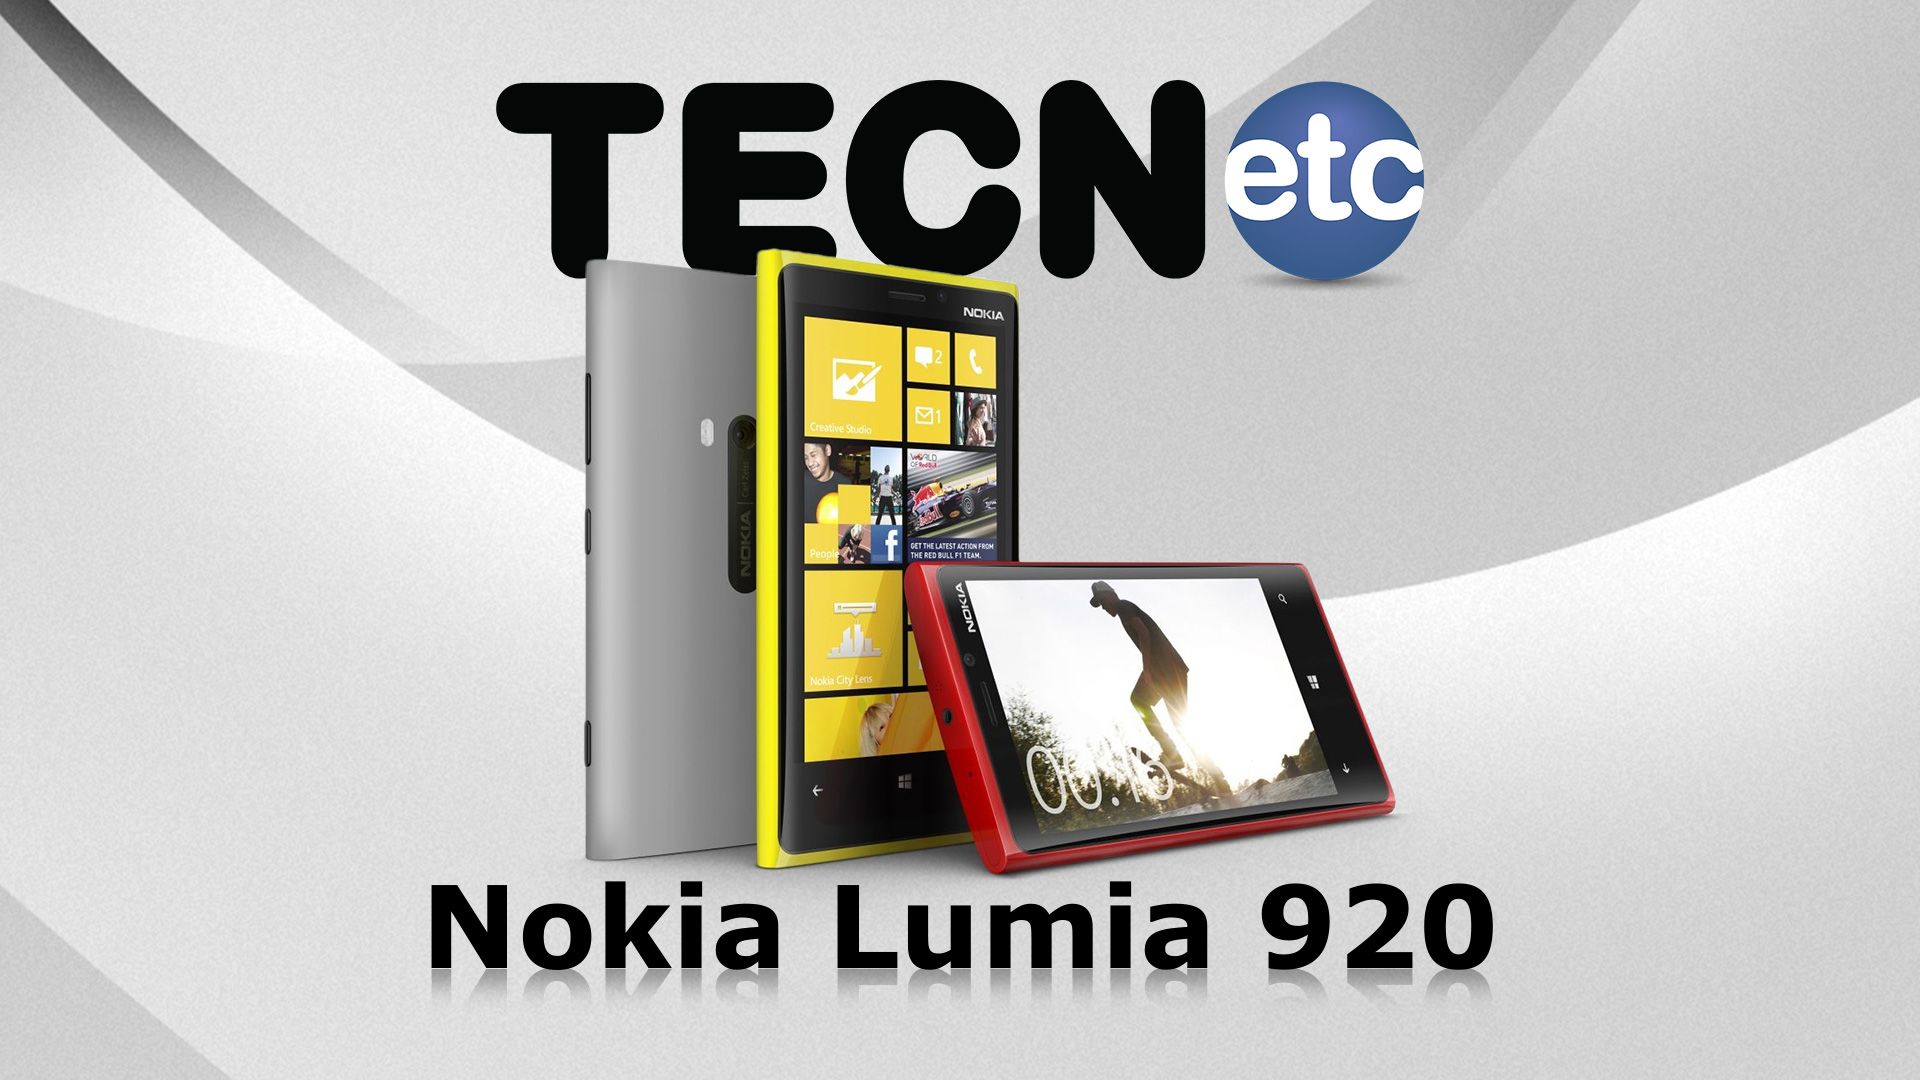 Nokia Lumia 920: Unboxing e Review